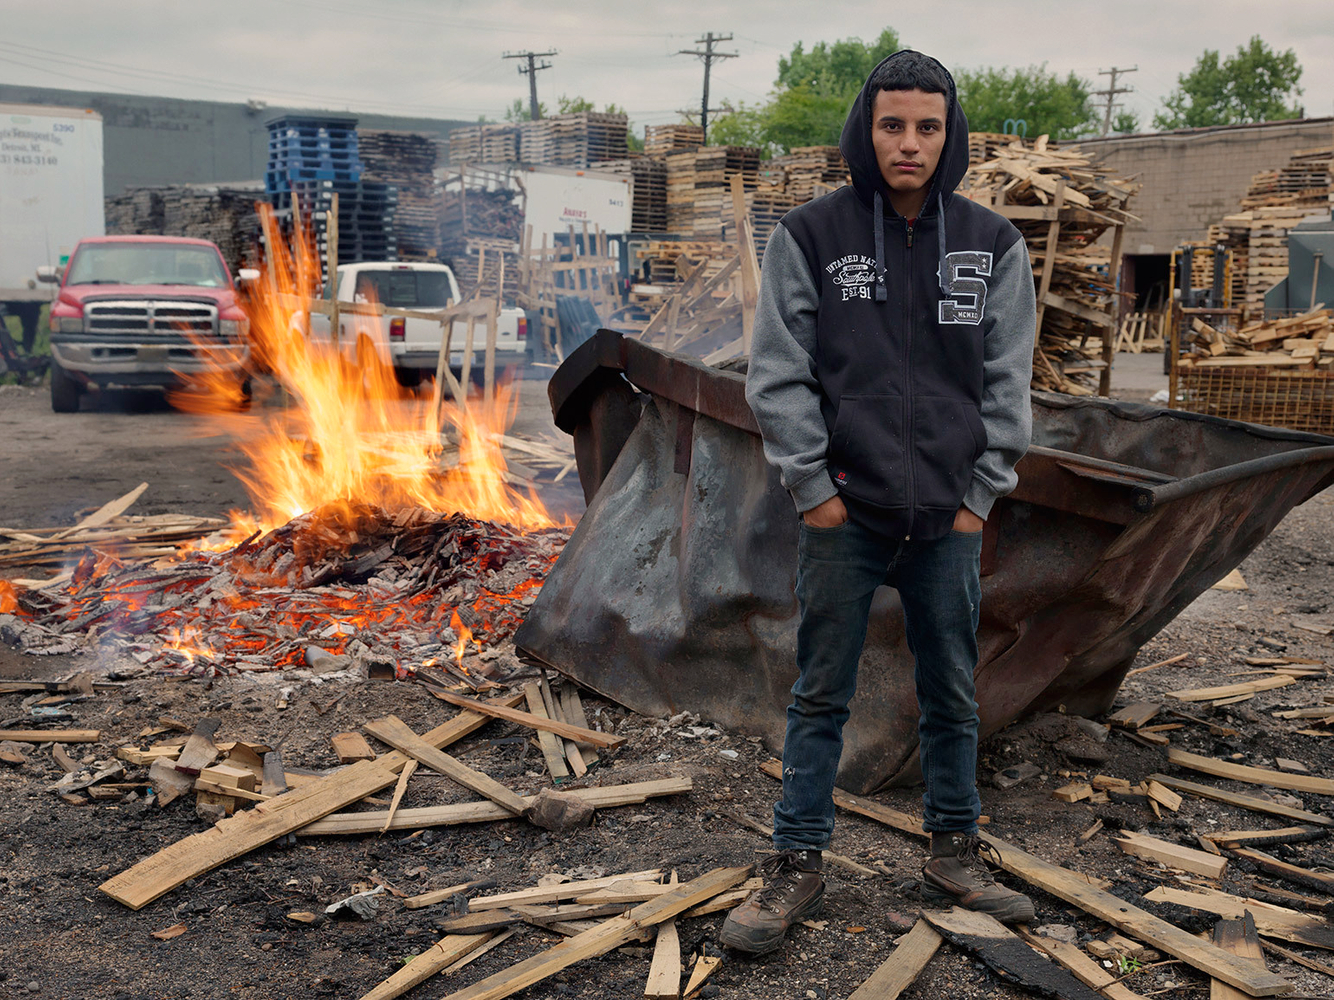 Jonathan Keeping Warm in the Pallet Yard Where He Works, Delray, Detroit 2014